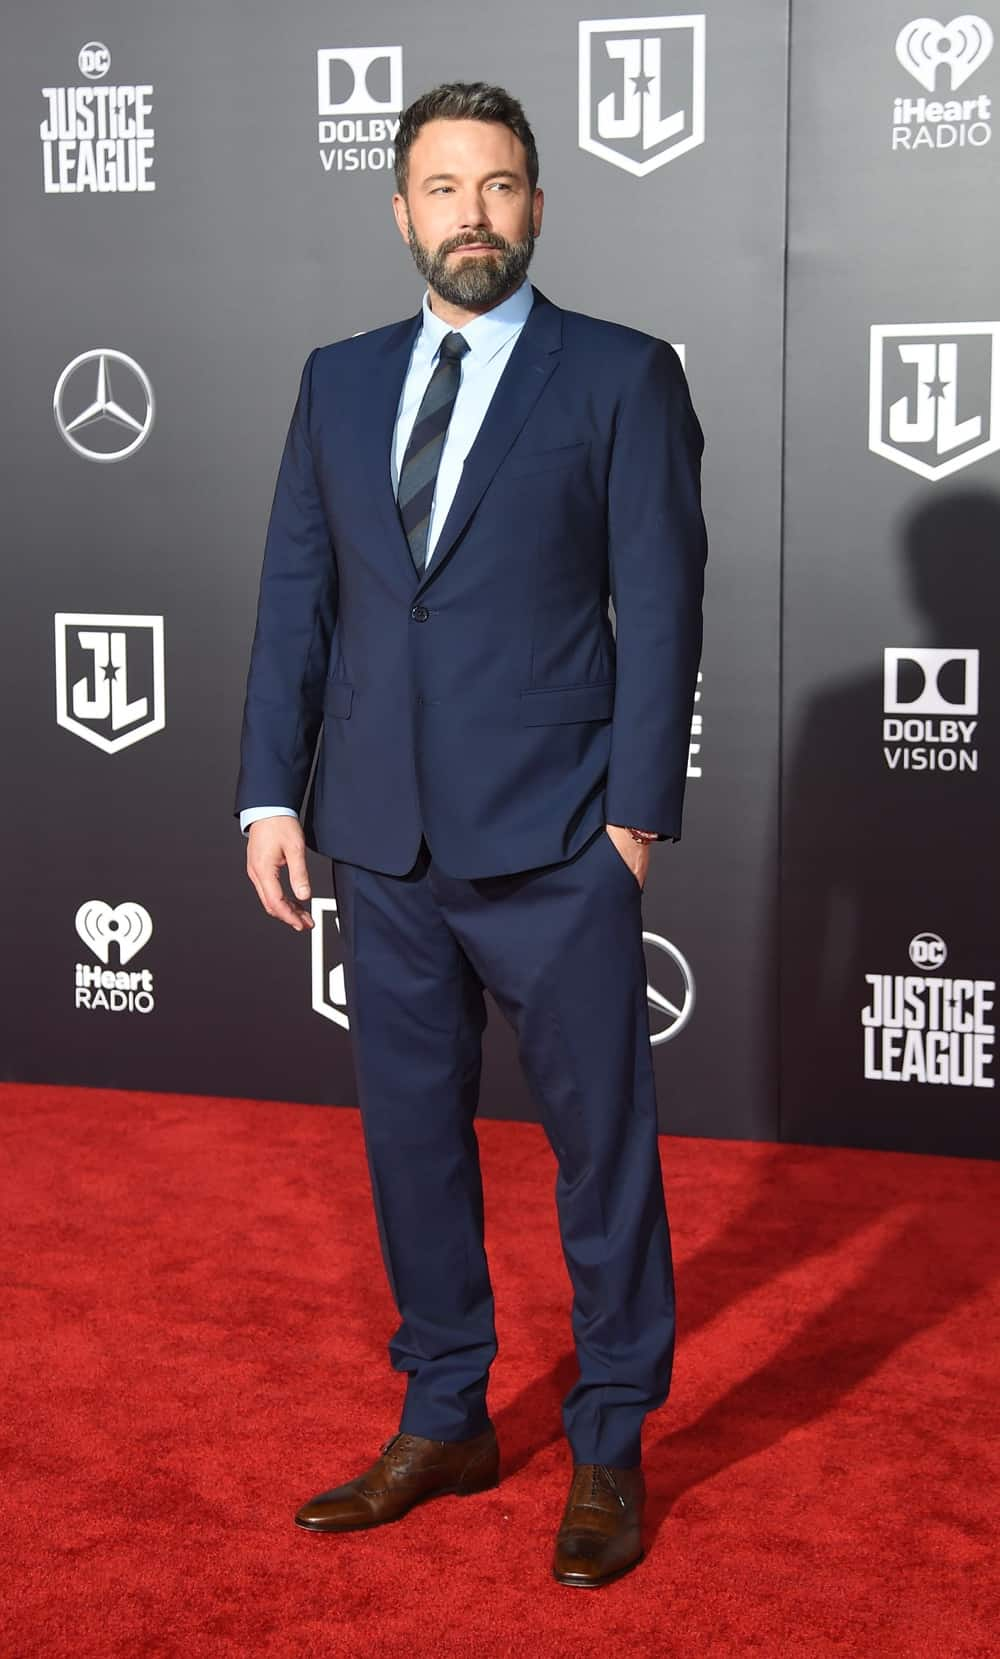 Ben Affleck ENTERTAINMENT-US-FILM-JUSTICE LEAGUE